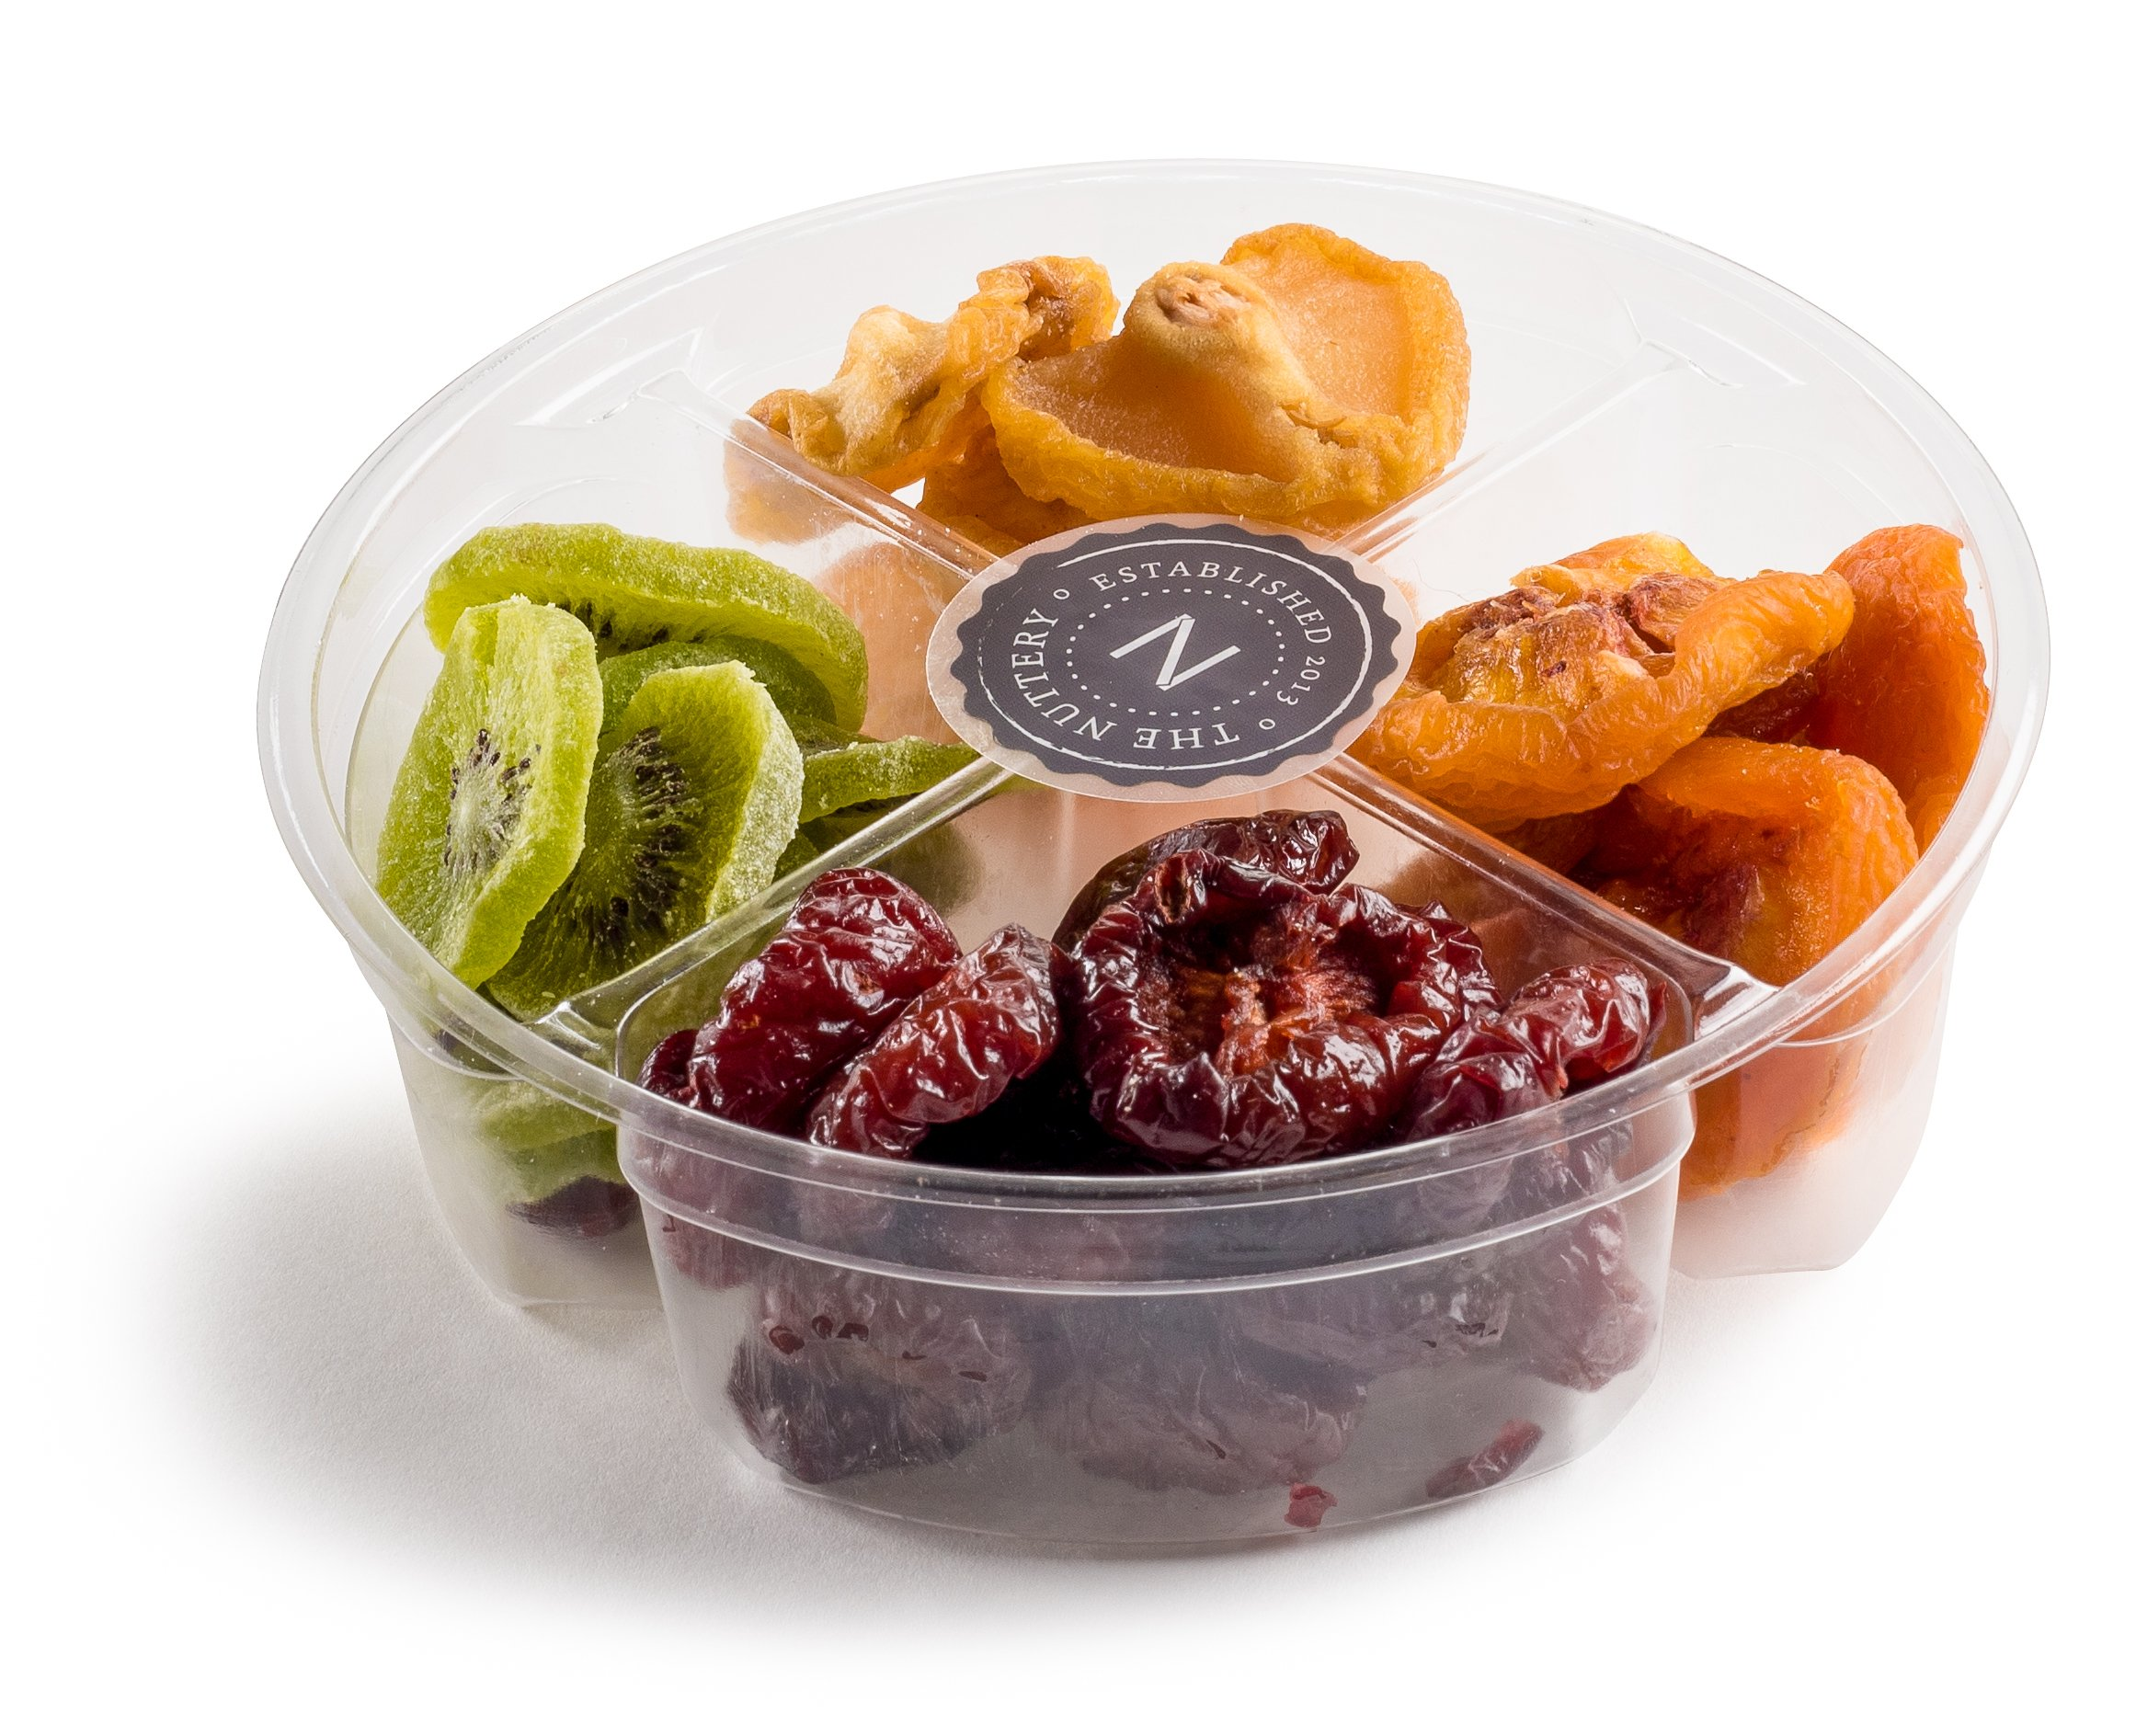 The Nuttery Holiday Gourmet Healthy Dried Fruit 4 Sectional Gift Tray